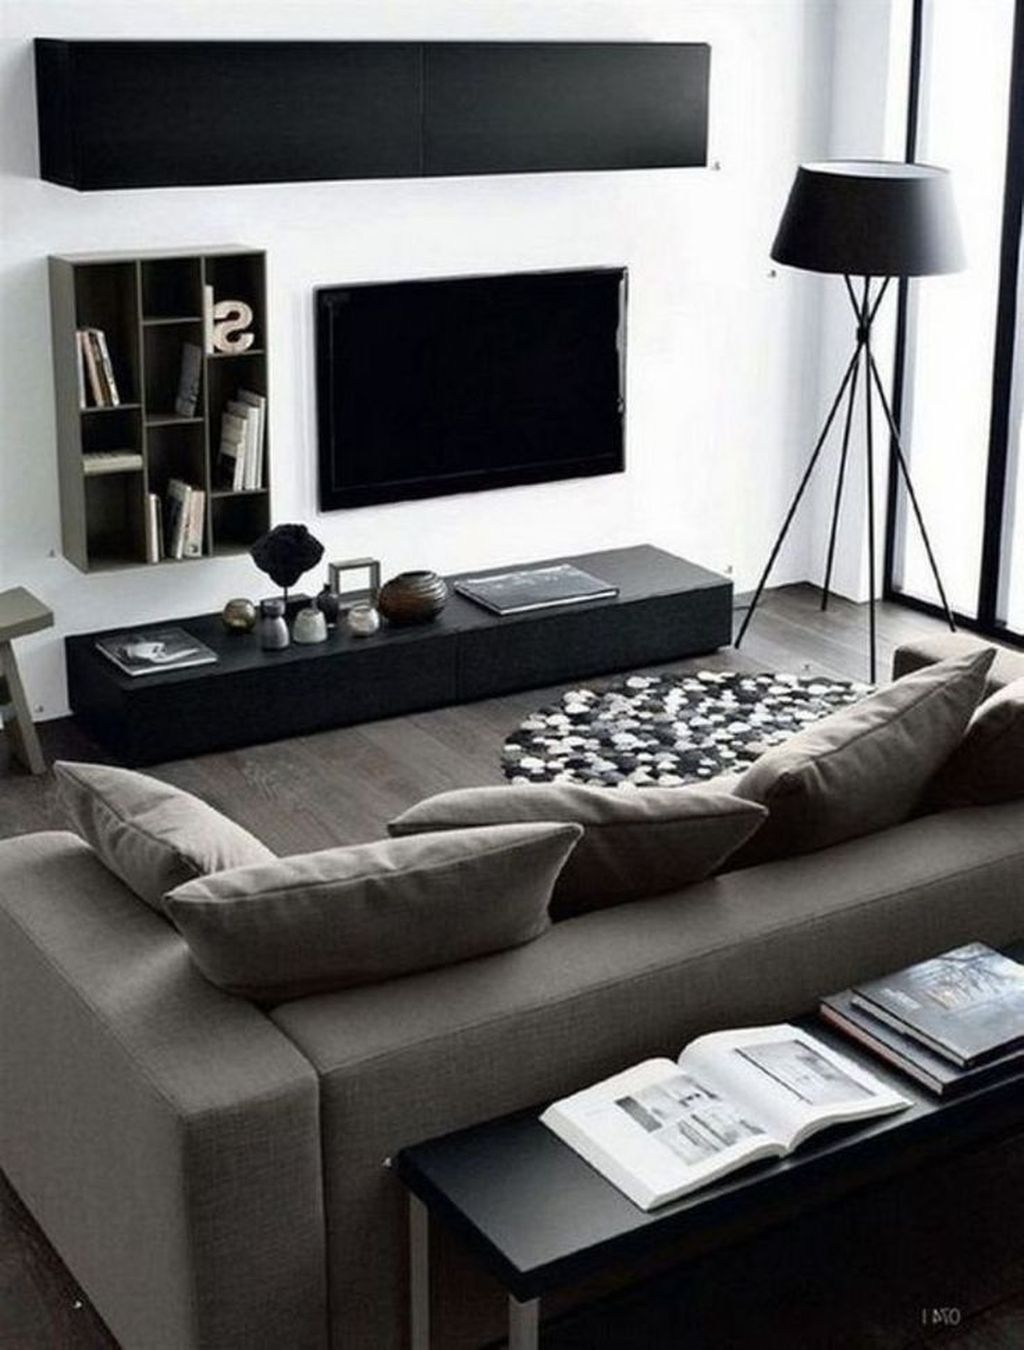 Recommended Minimalist Living Room Decor Ideas That Will Inspire You 22